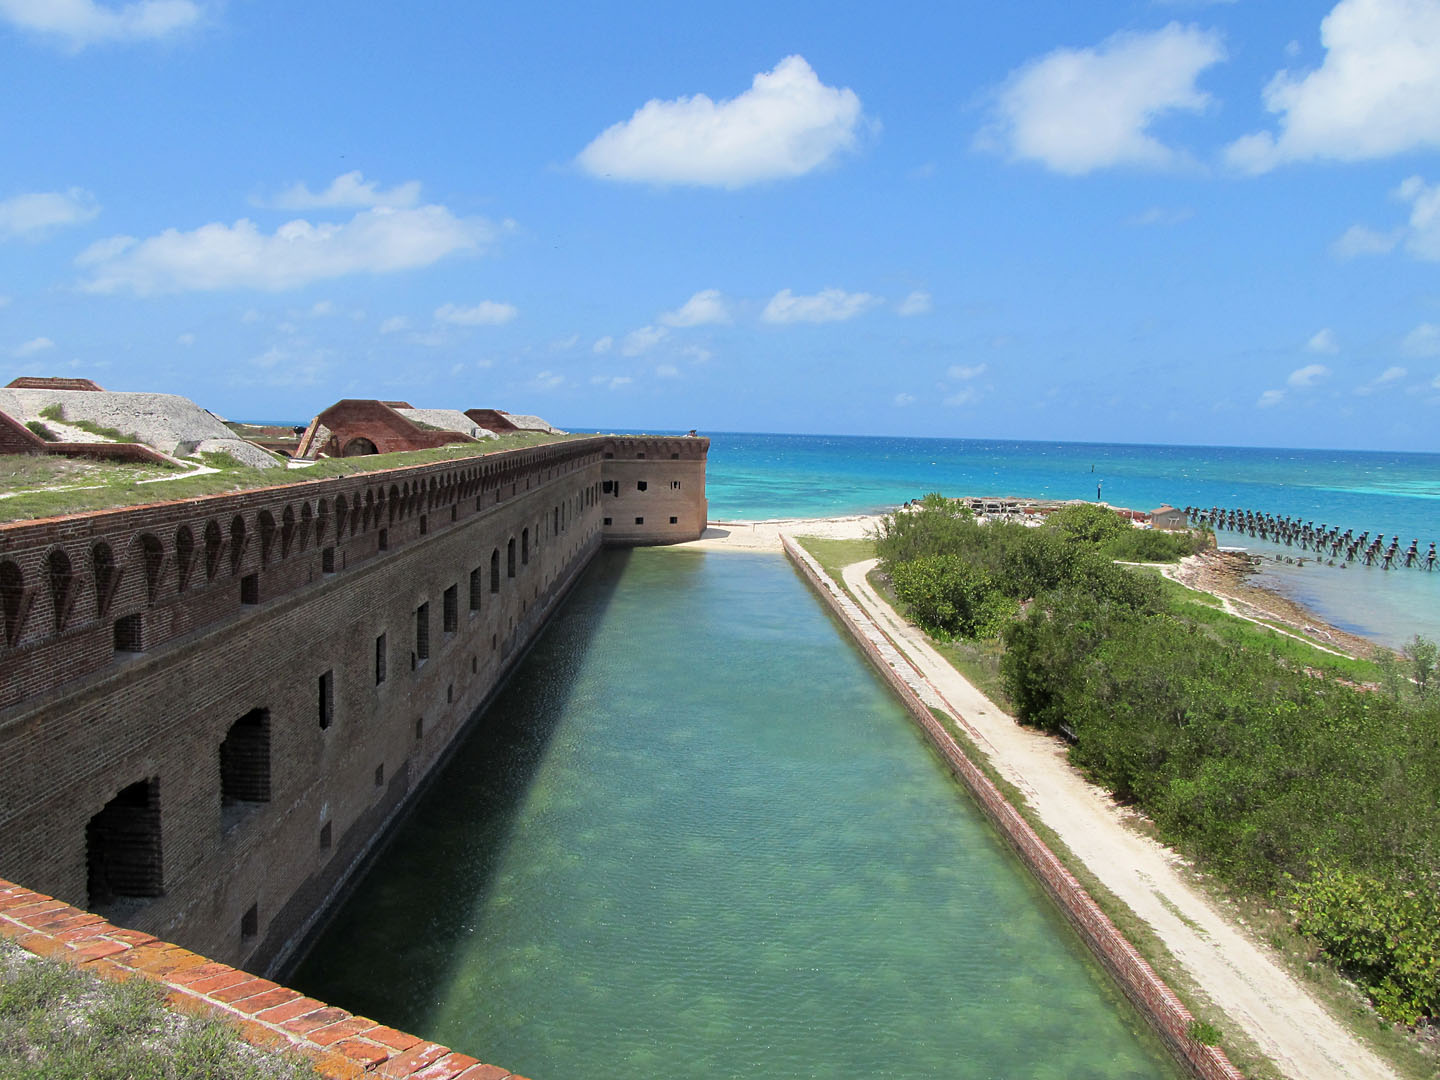 Fort Jefferson Moat